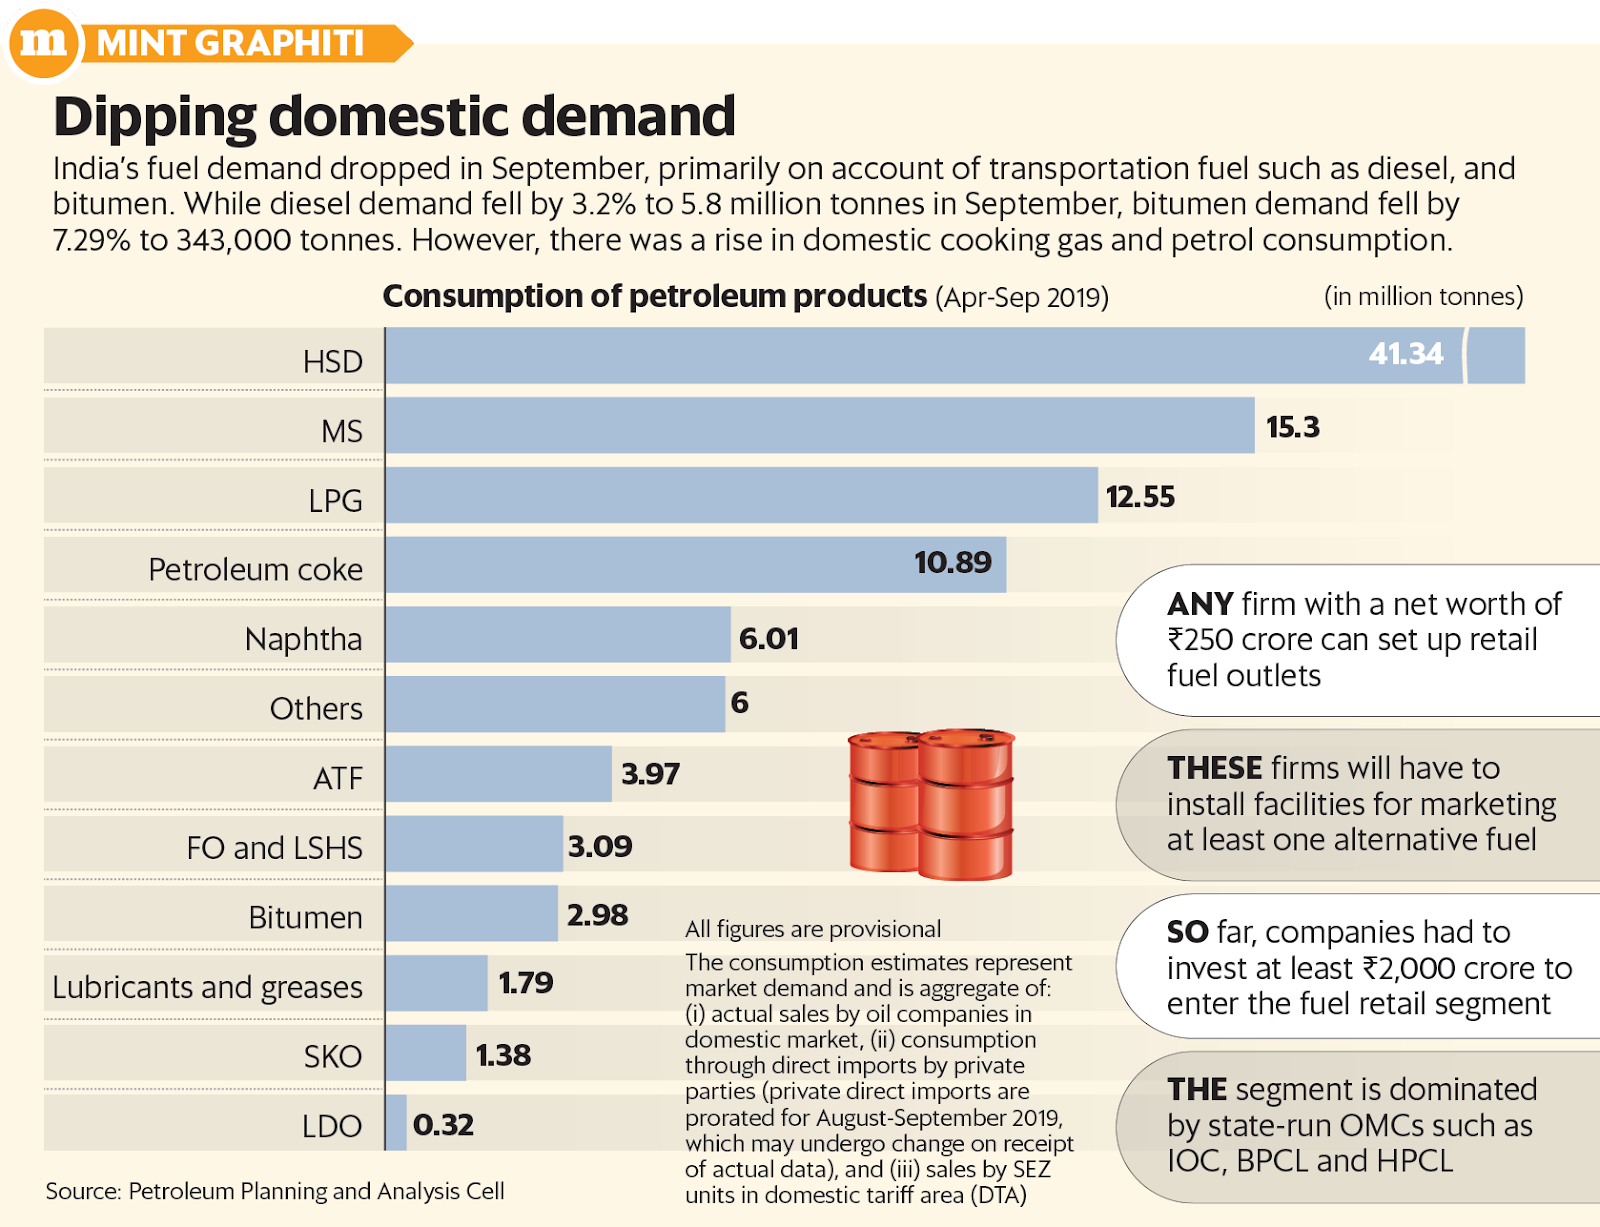 Dipping domestic demand